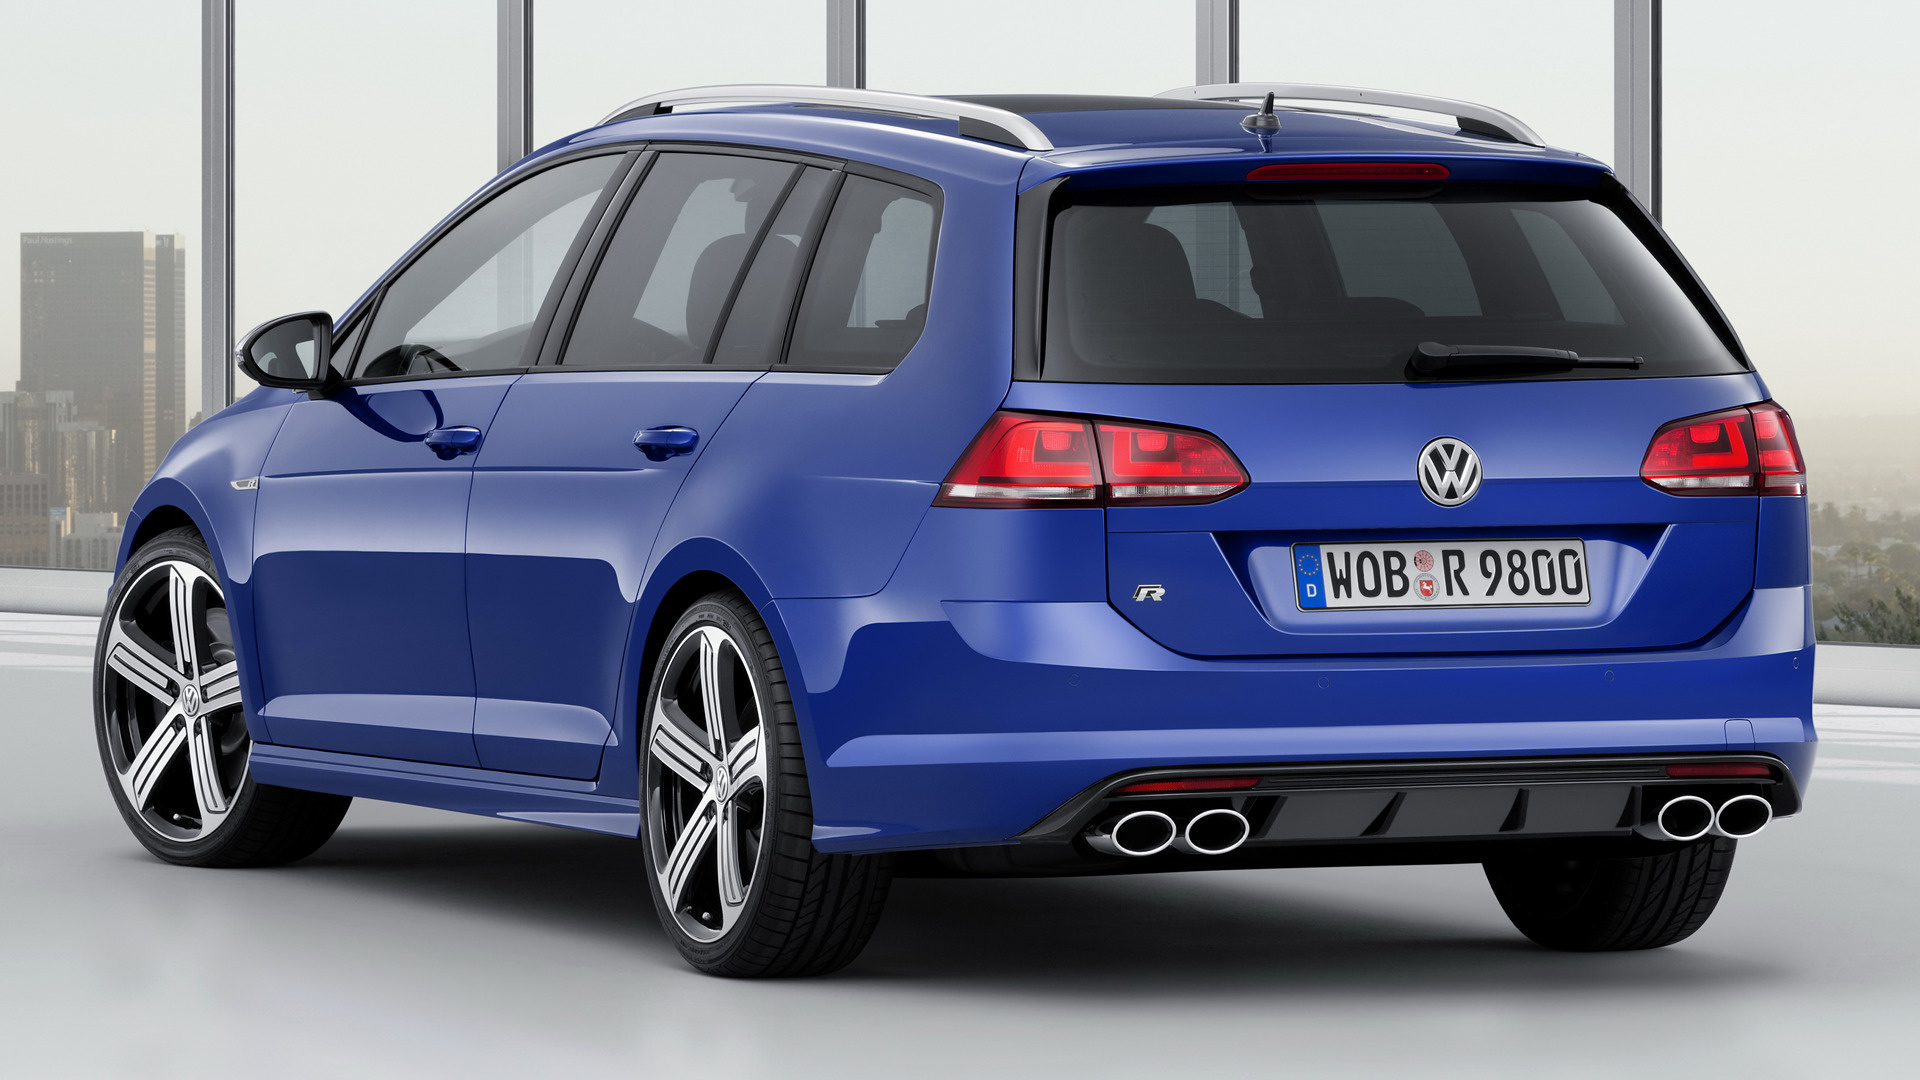 Skoda Vision E >> Volkswagen Golf R Variant (2015) Wallpapers and HD Images - Car Pixel